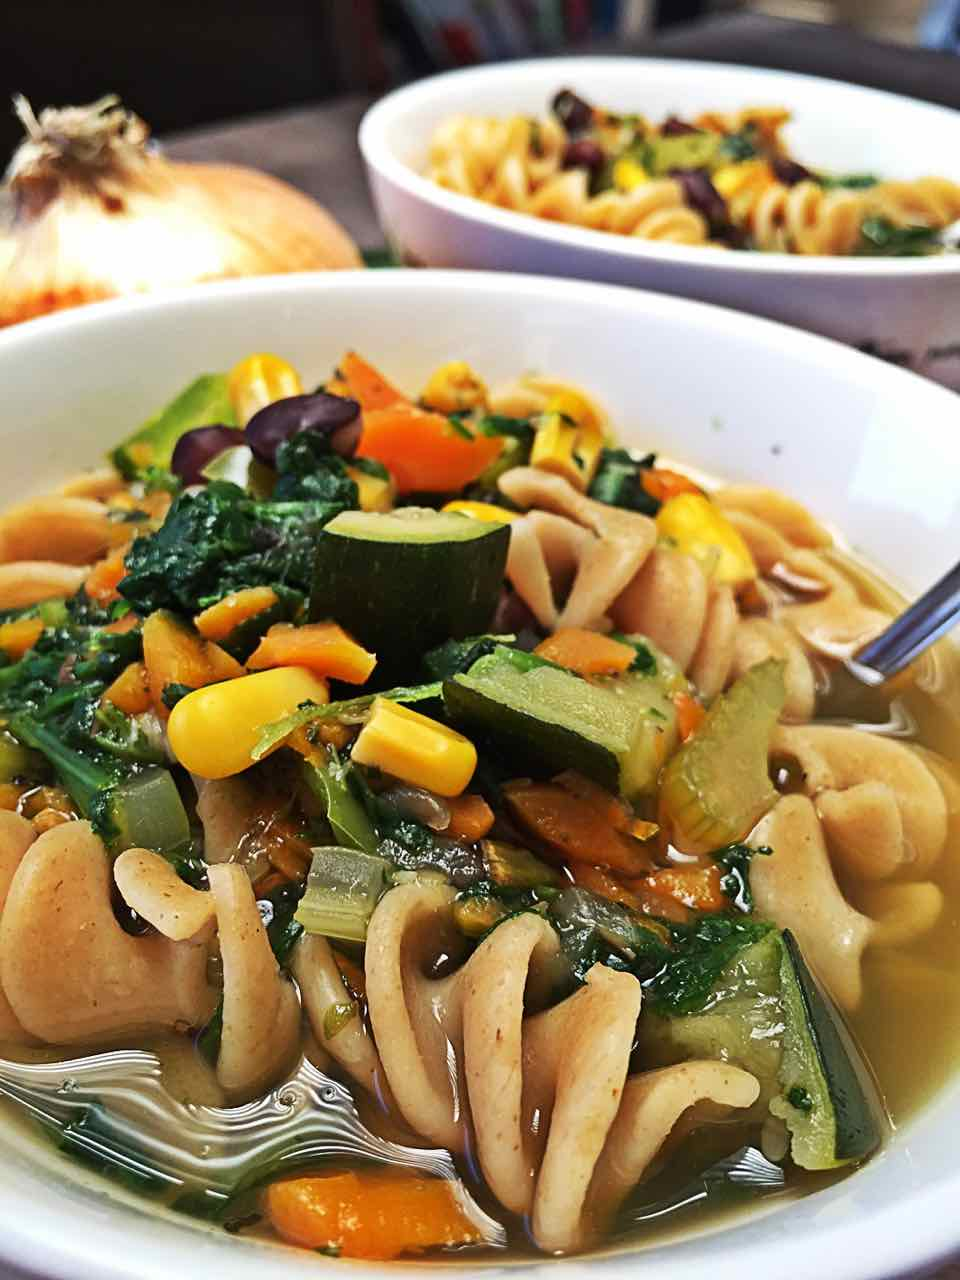 Image of close up vegan green vegetable medley soup in bowl, with pasta and carrots and spinach and black beans and zucchini, it looks very delicious.